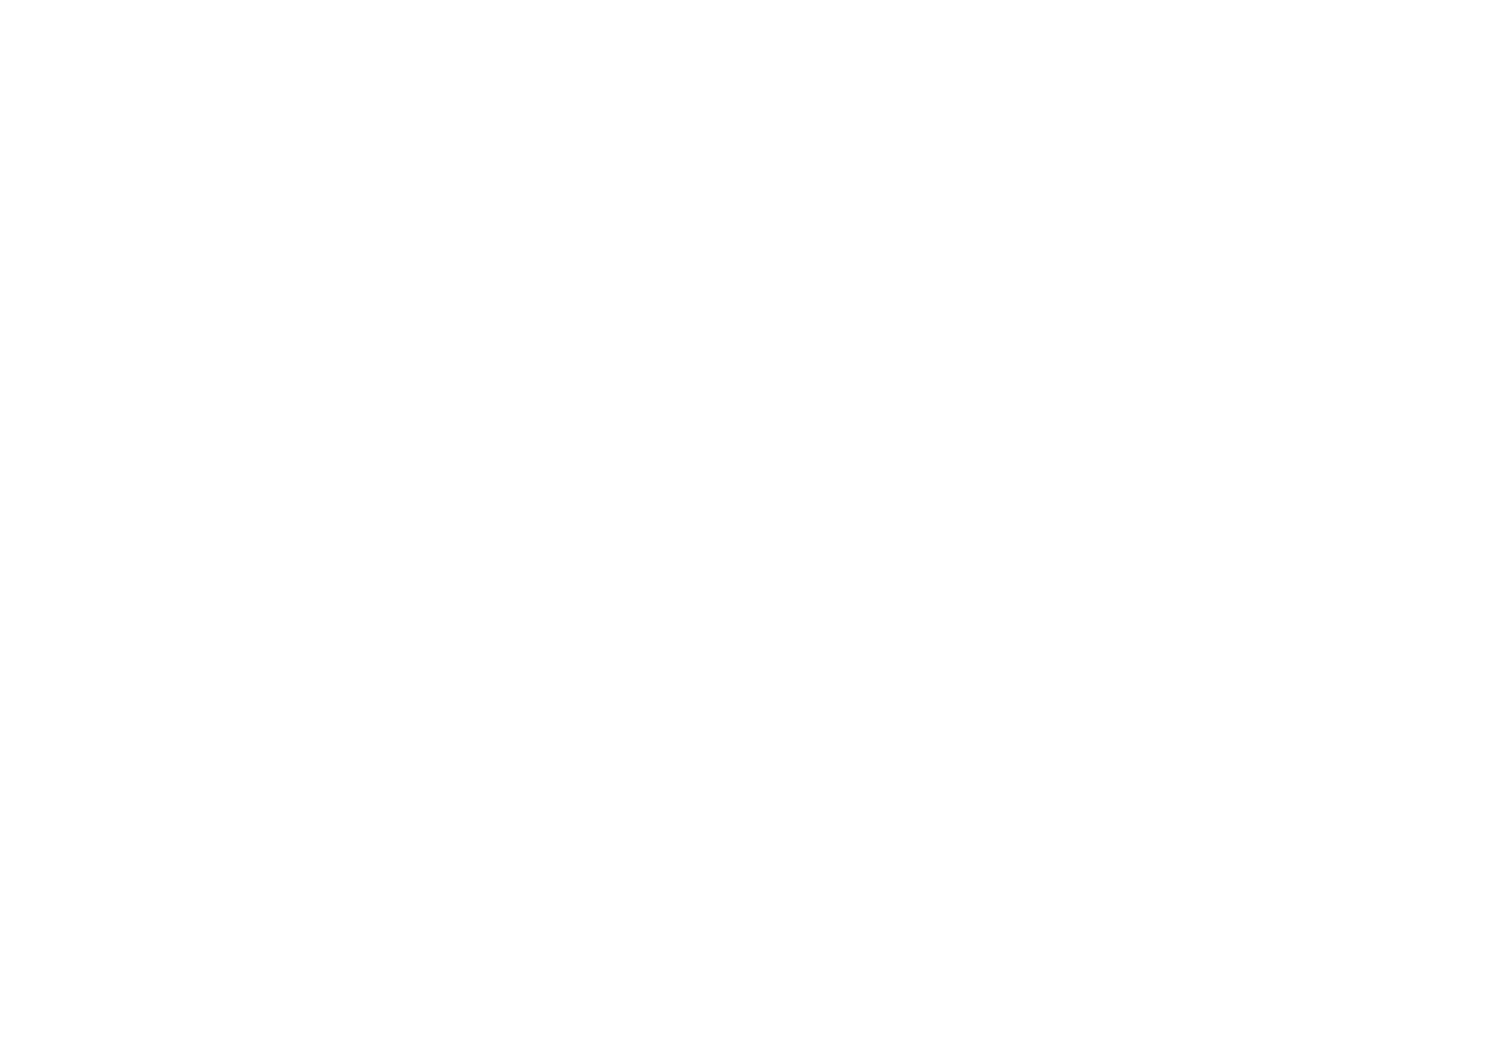 Marianne Lucas Photography & Cinematography